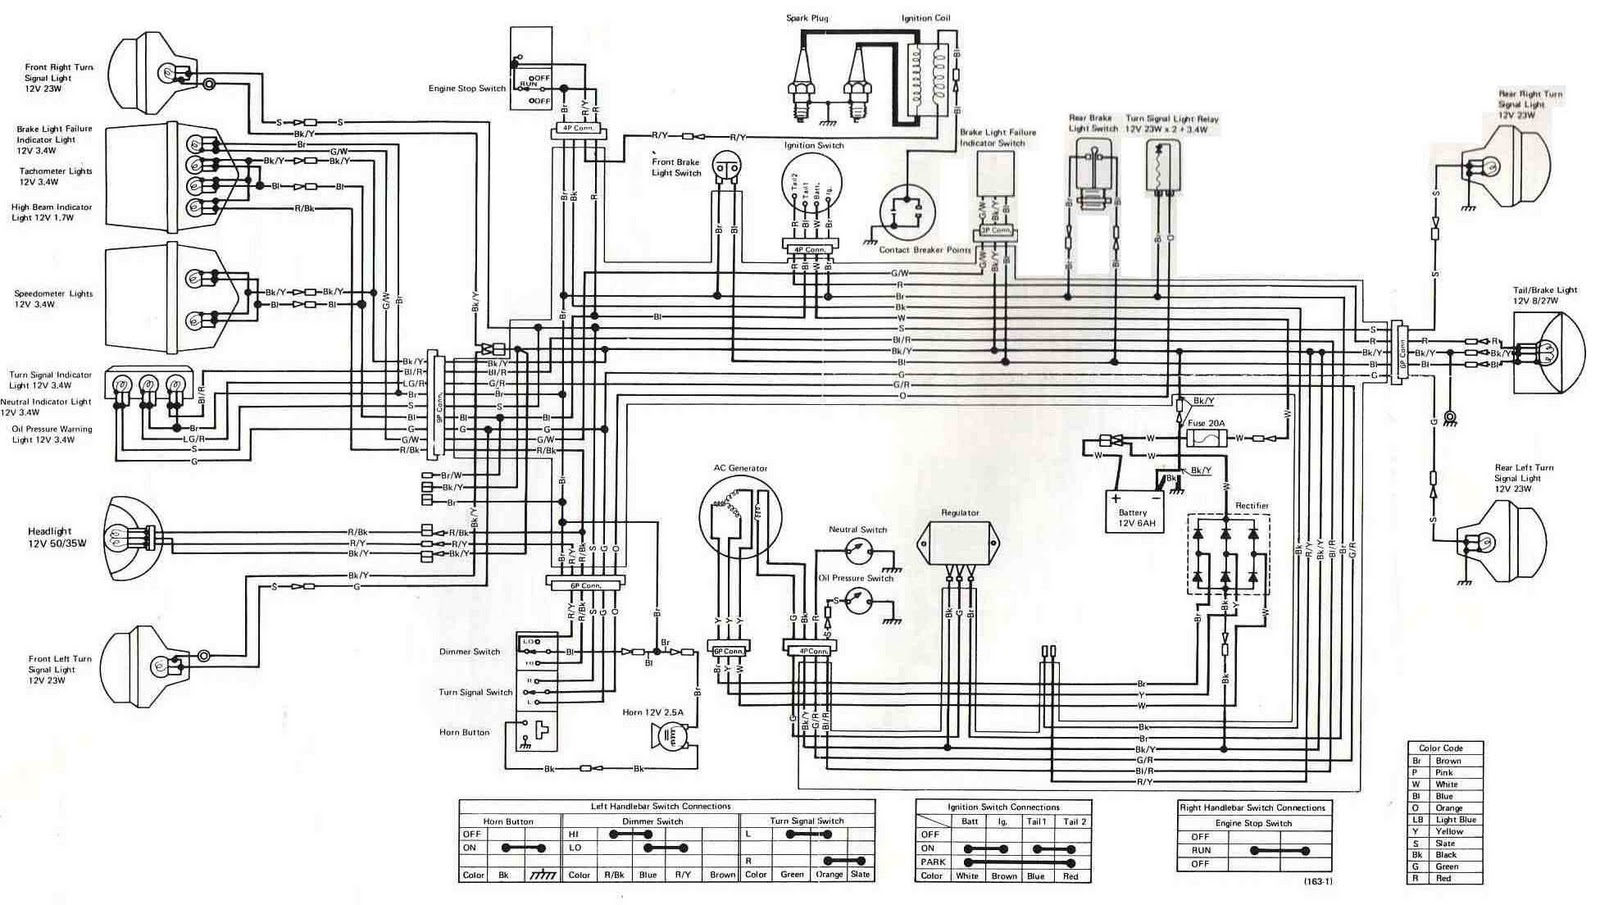 Kawasaki KZ400 1975 Electrical Wiring Diagram | All about